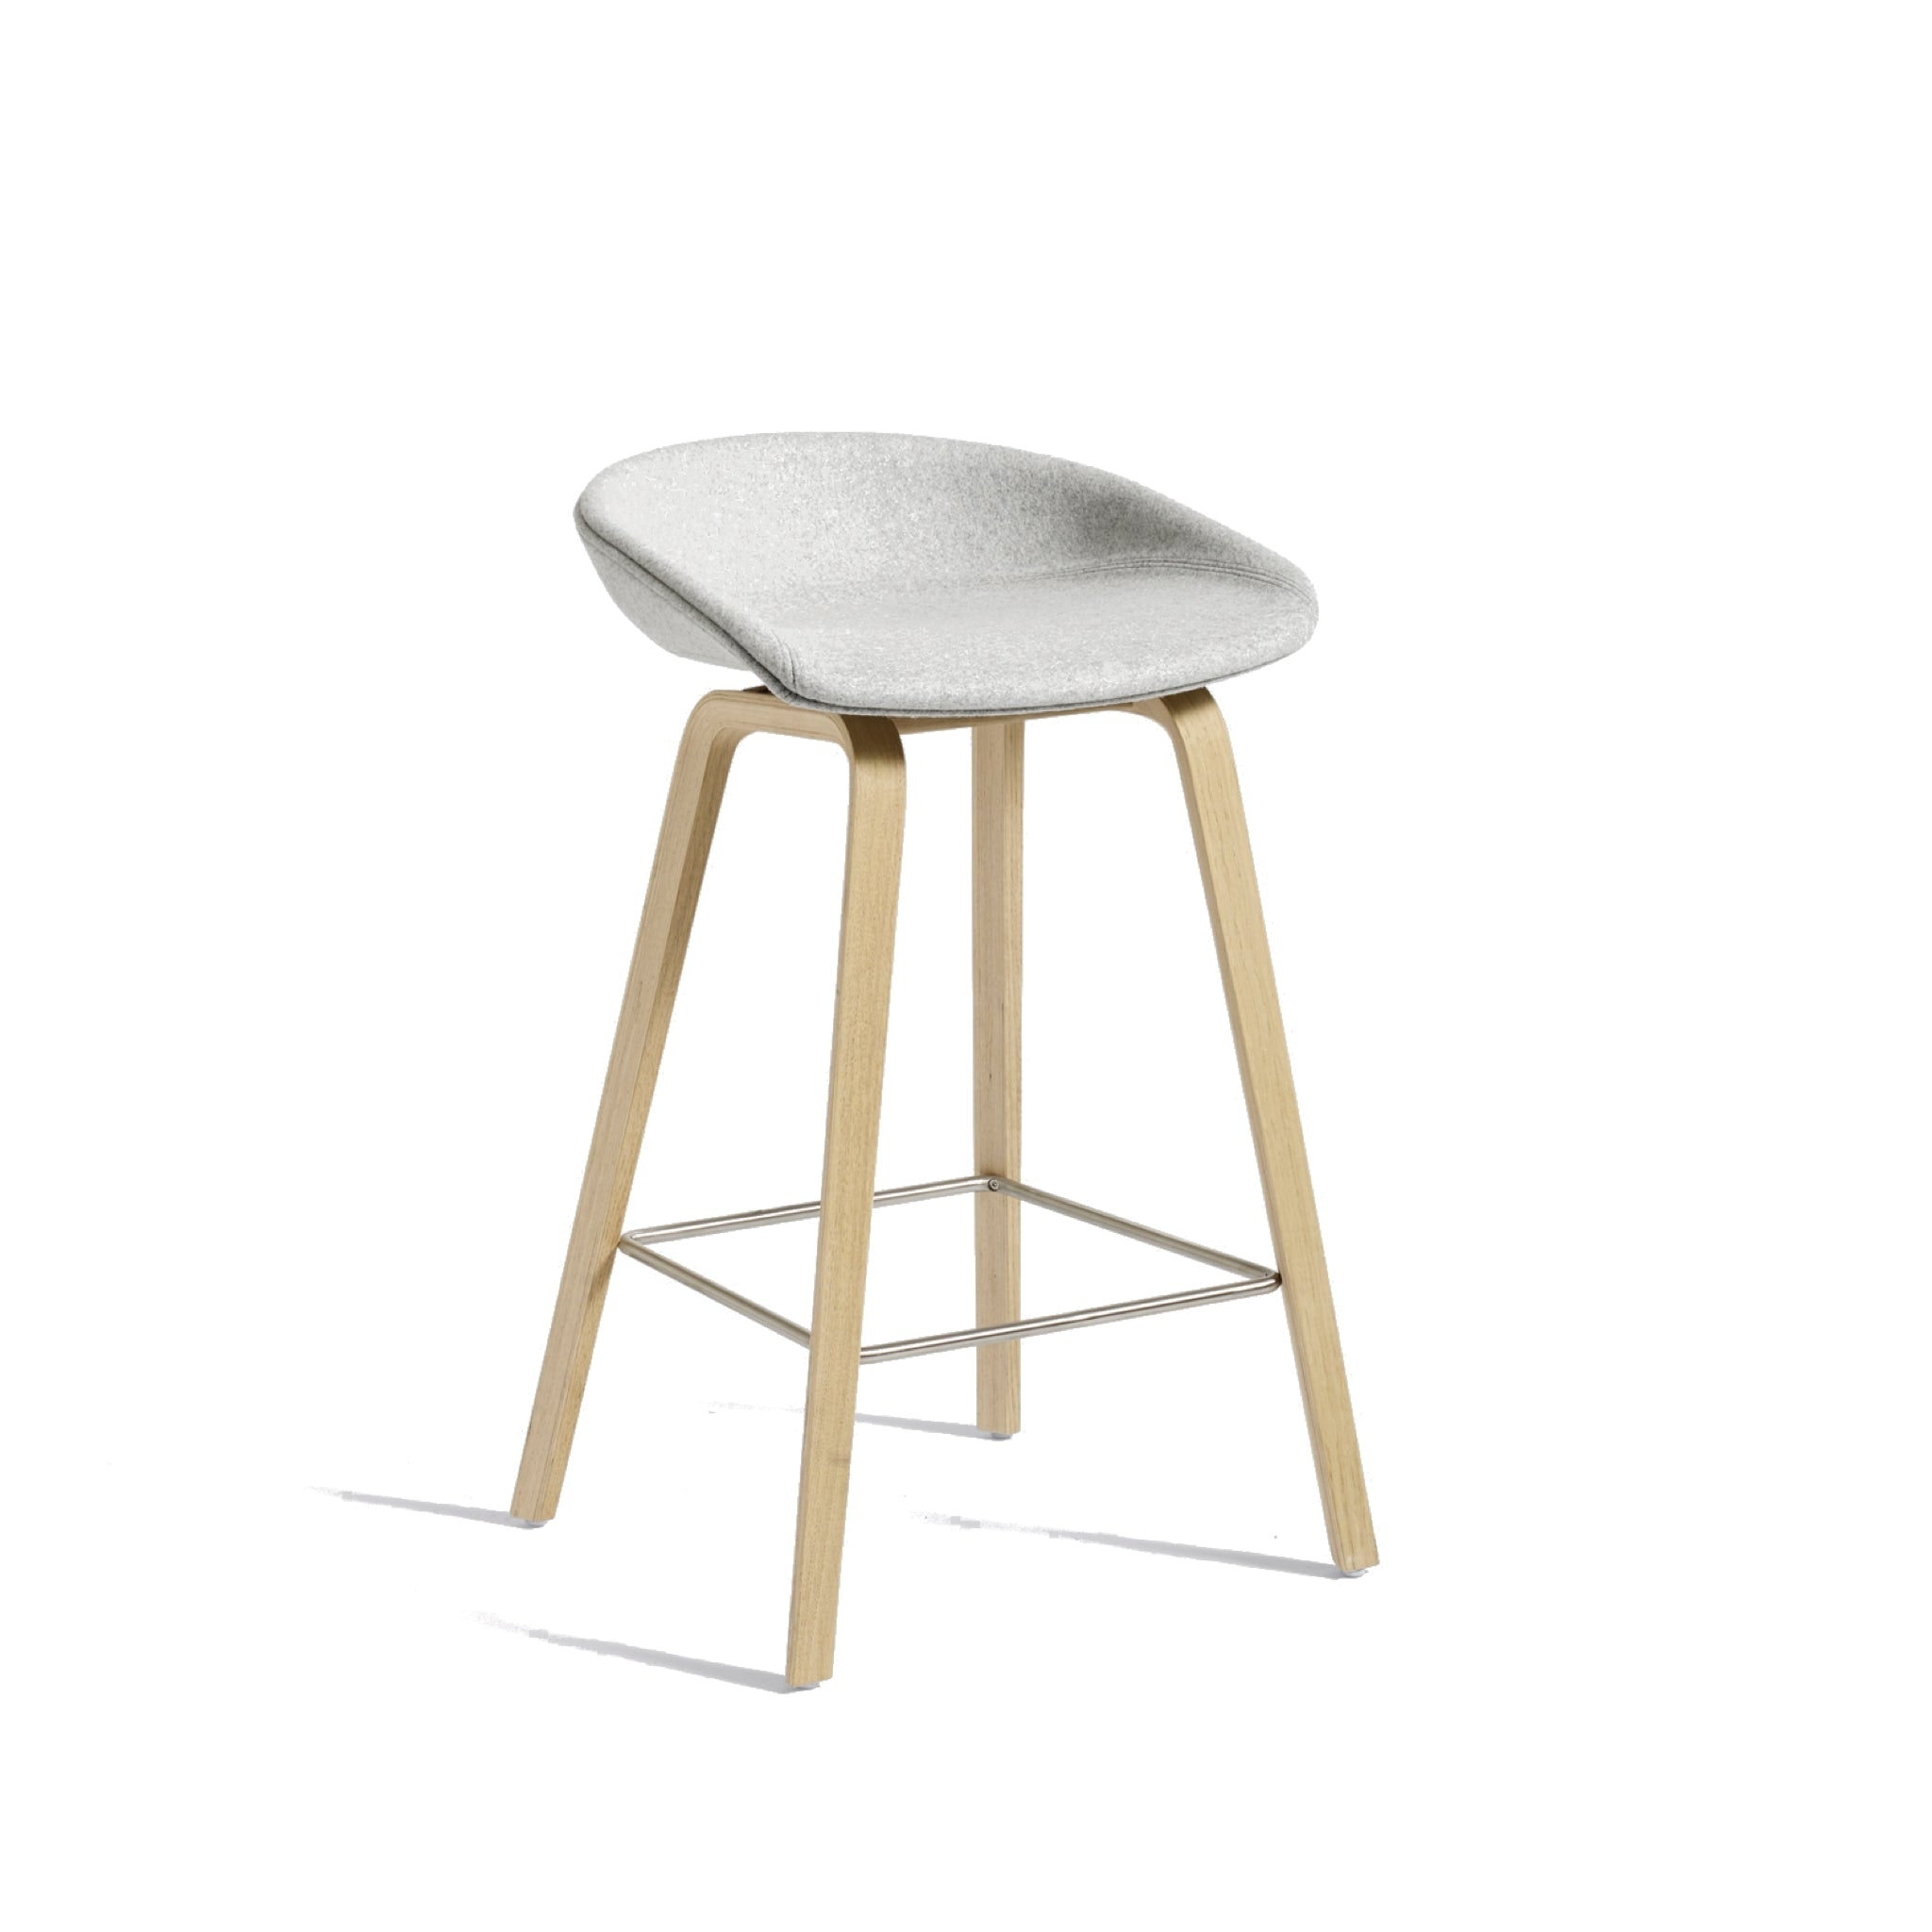 About a Stool AAS 33 - Wooden Base by Hay